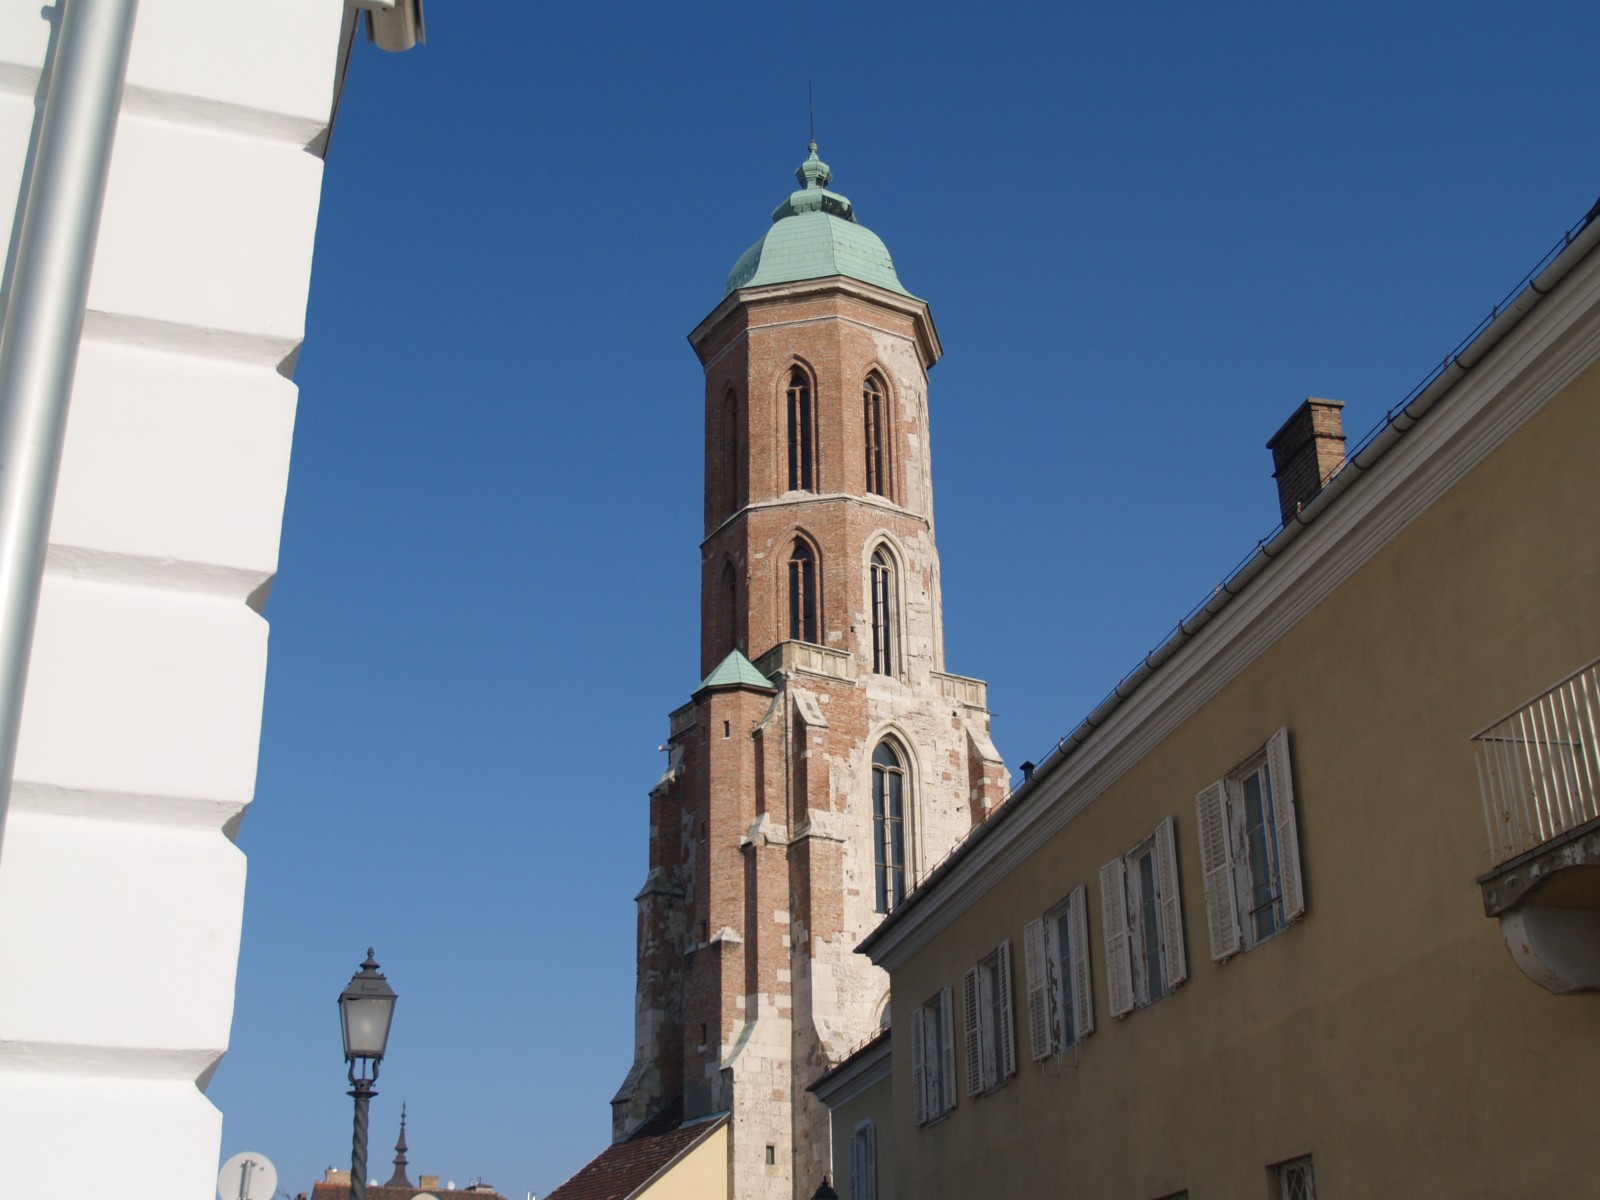 St. Mary Magdalena Tower